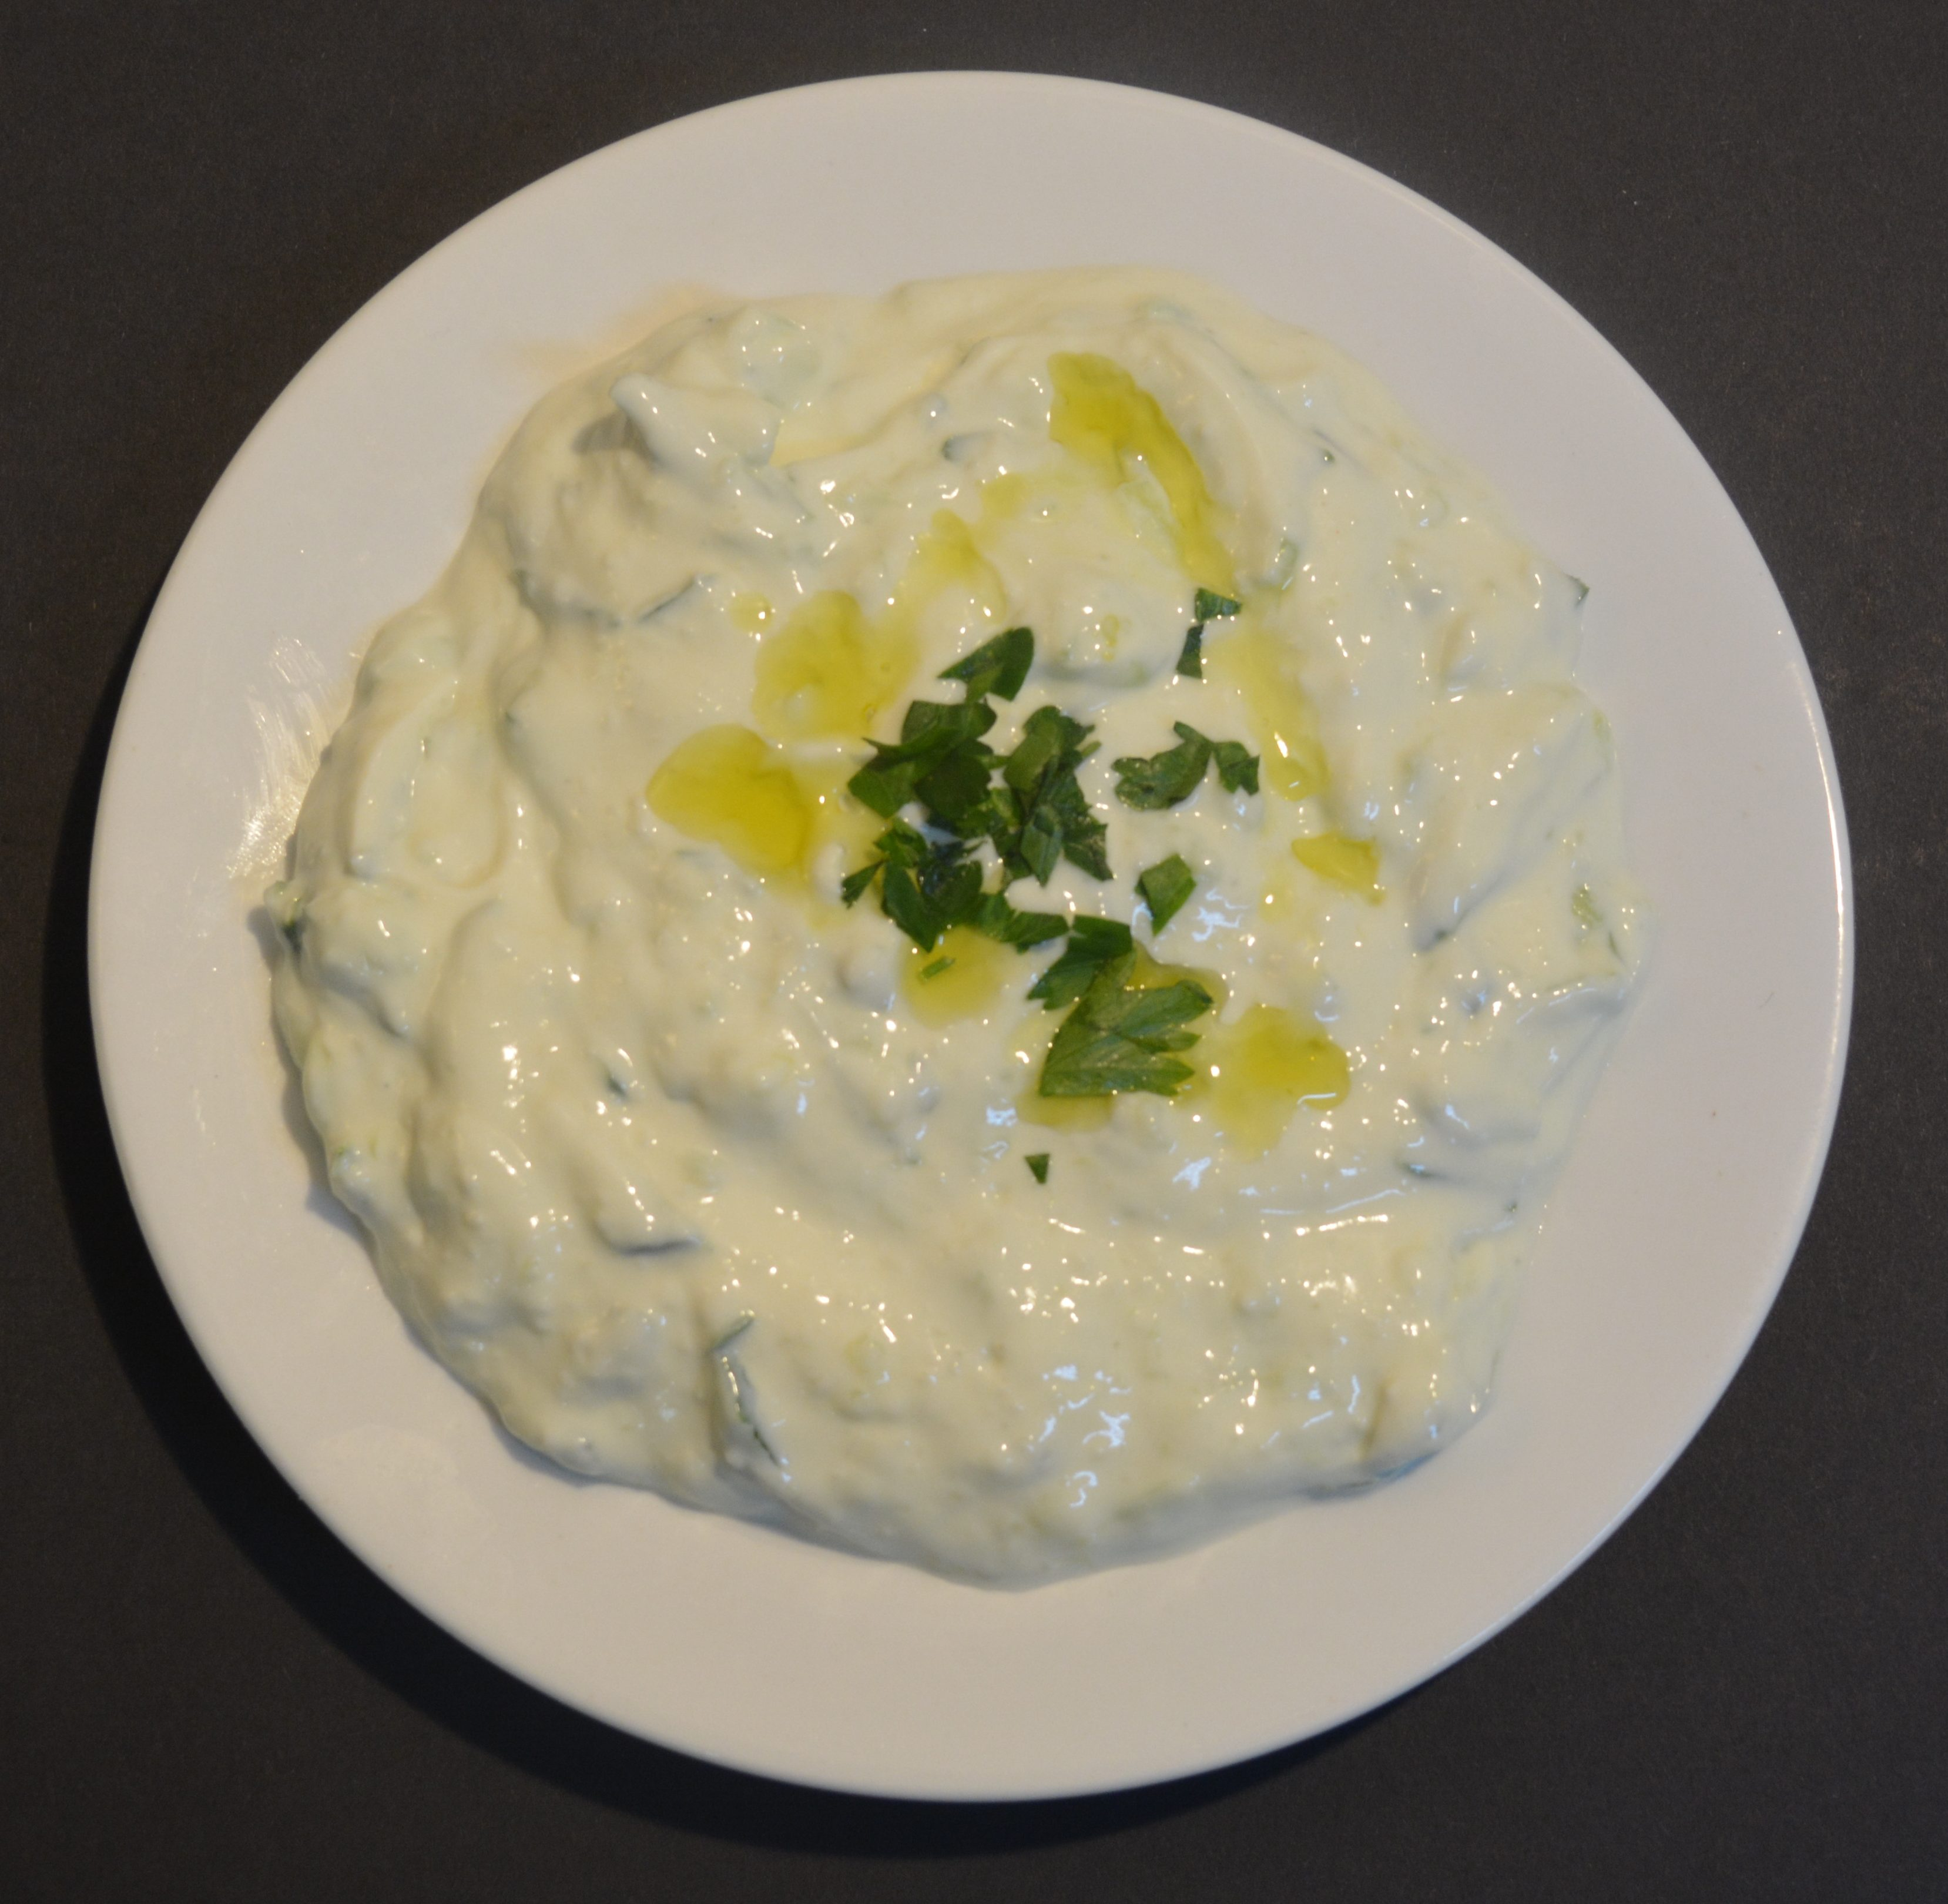 Tzatziki is made of salted strained yogurt or diluted yogurt mixed with cucumbers, garlic, salt, olive oil, sometimes with vinegar or lemon